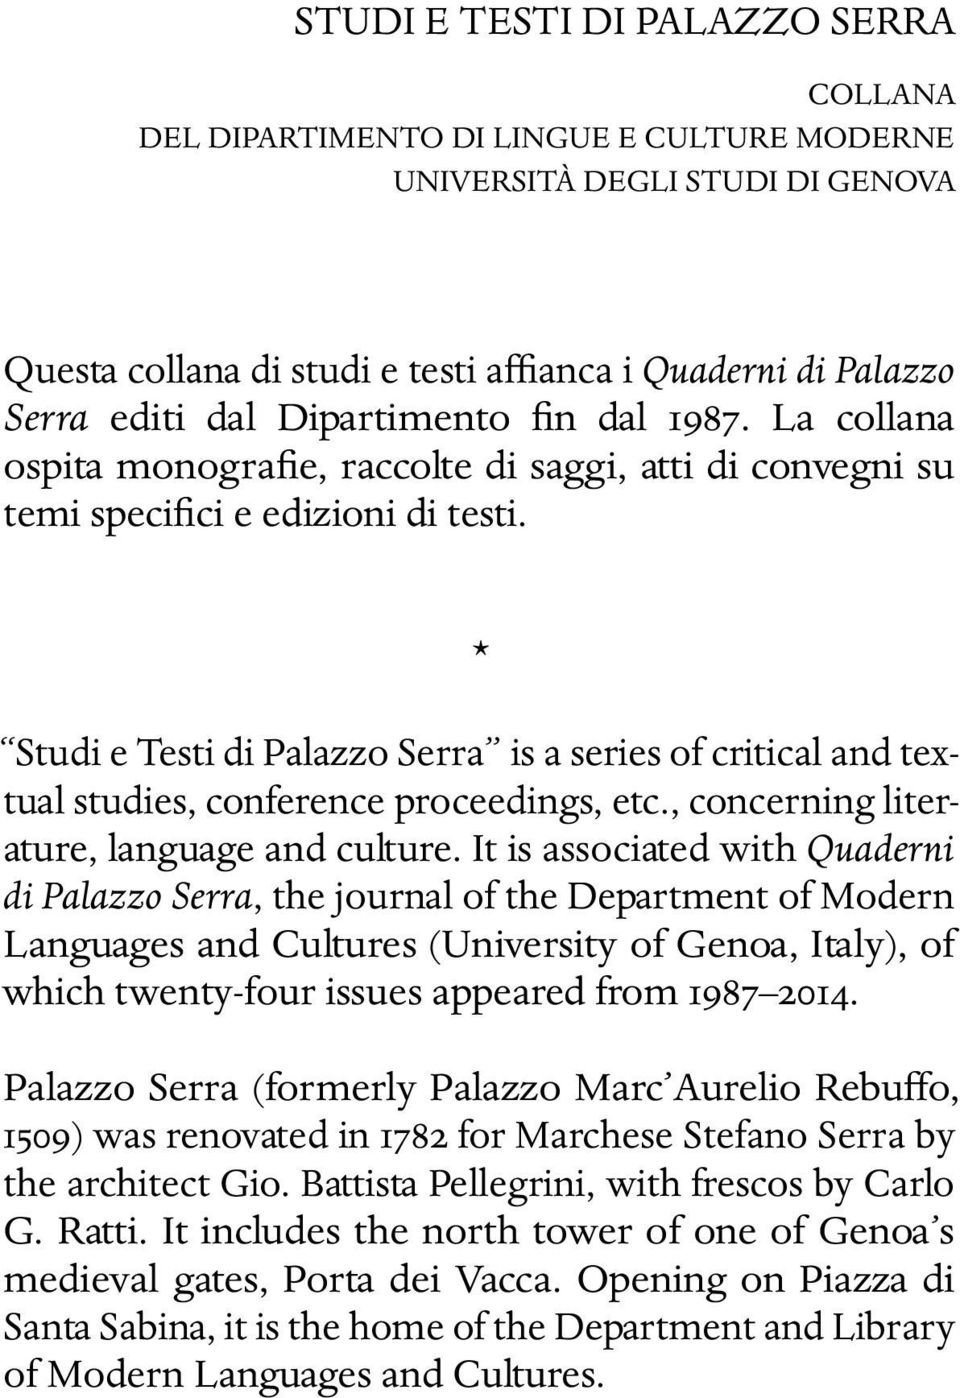 * Studi e Testi di Palazzo Serra is a series of critical and textual studies, conference proceedings, etc., concerning literature, language and culture.